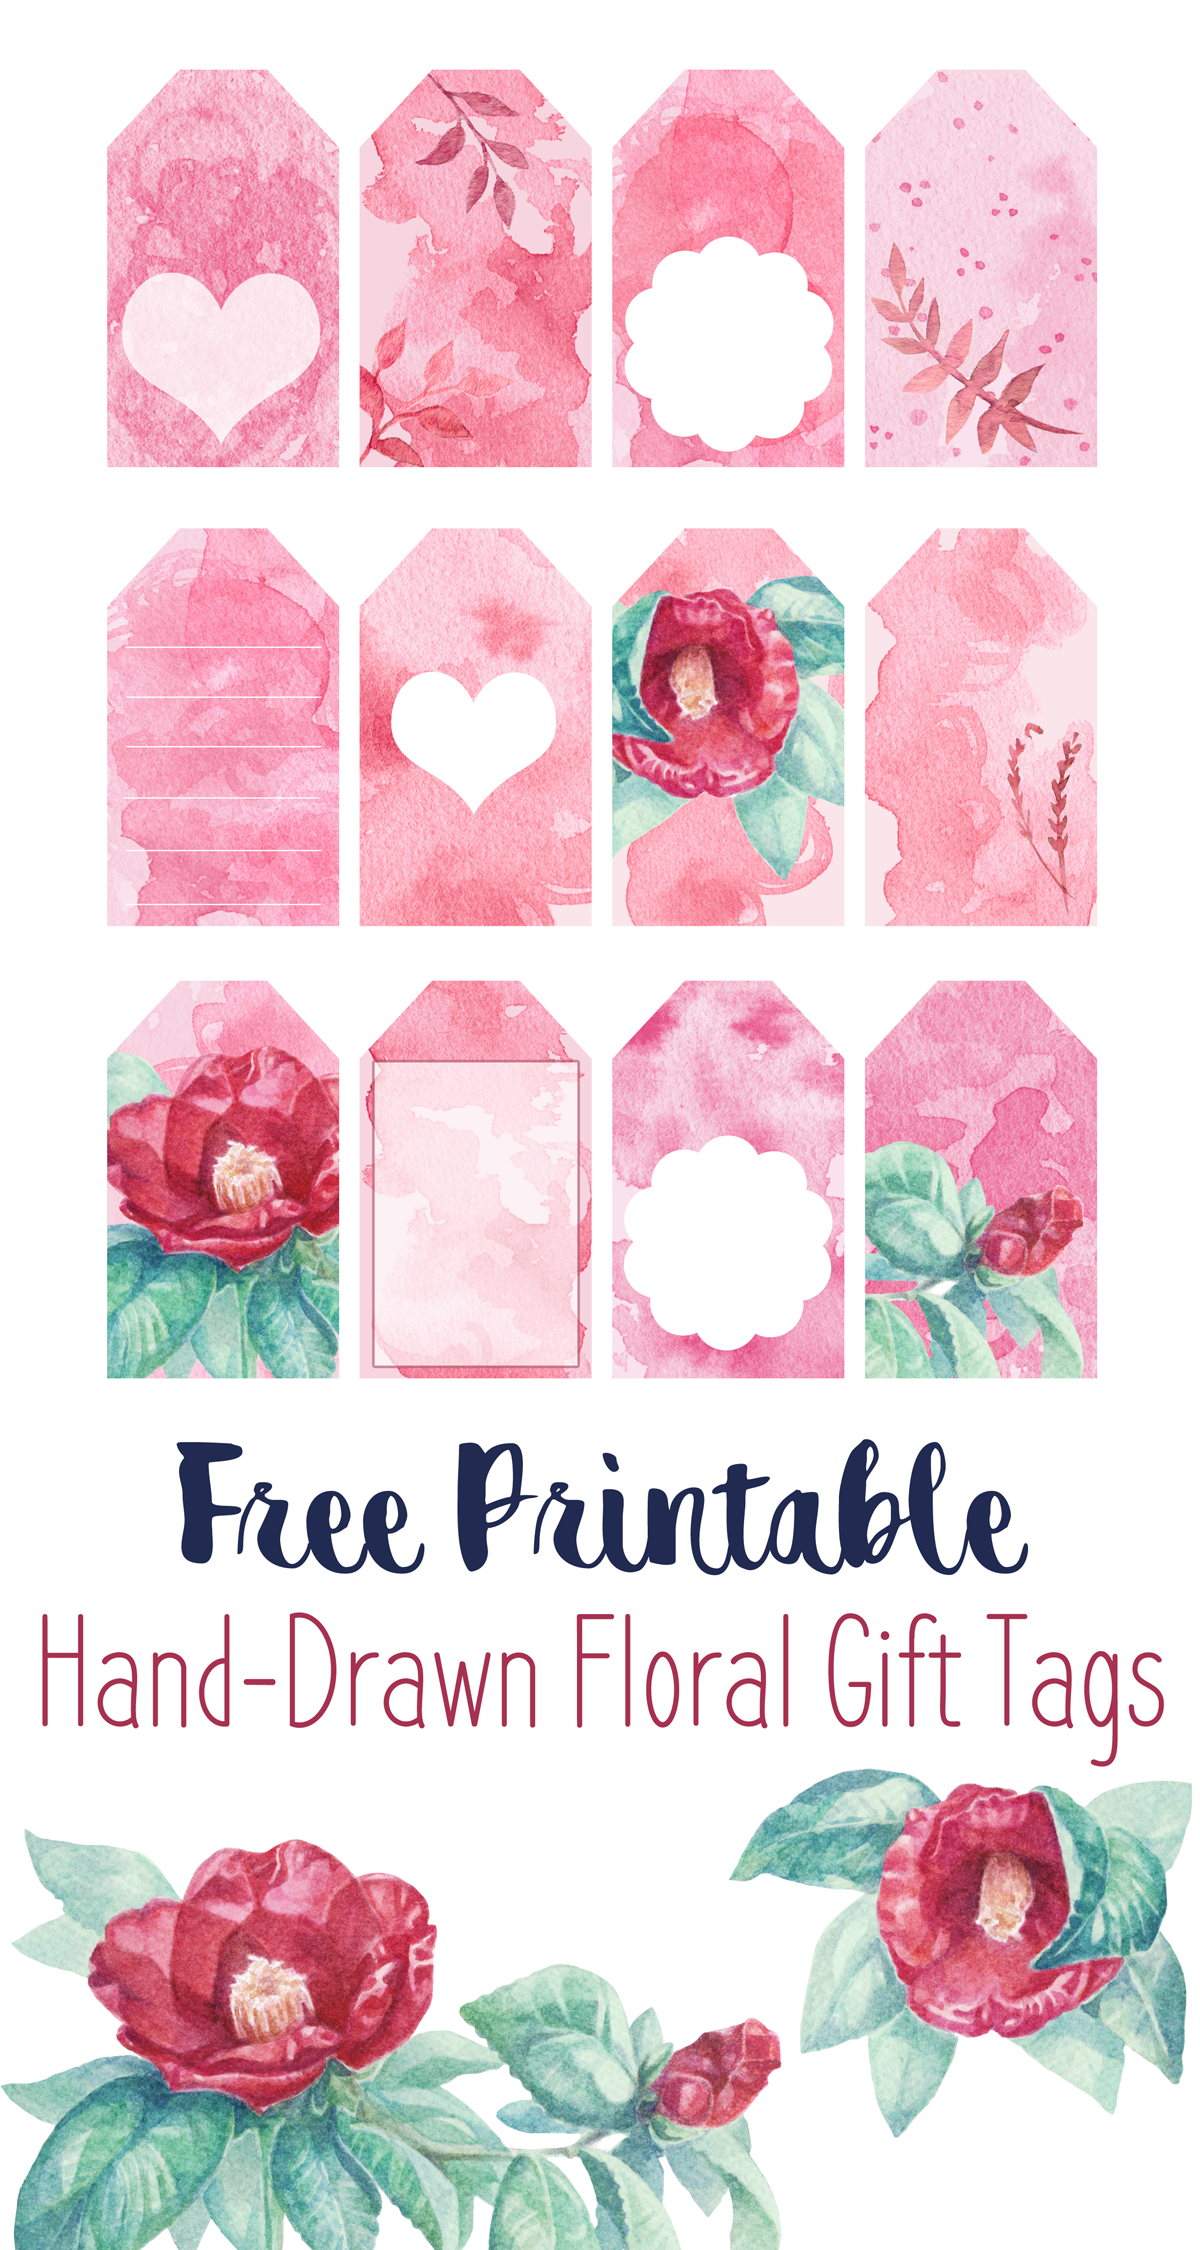 Free Printable Watercolor Flower Gift Tags Hand Drawn Art Turned Into Diy Printables To Use As G Free Printable Gift Tags Free Printable Gifts Free Gift Tags